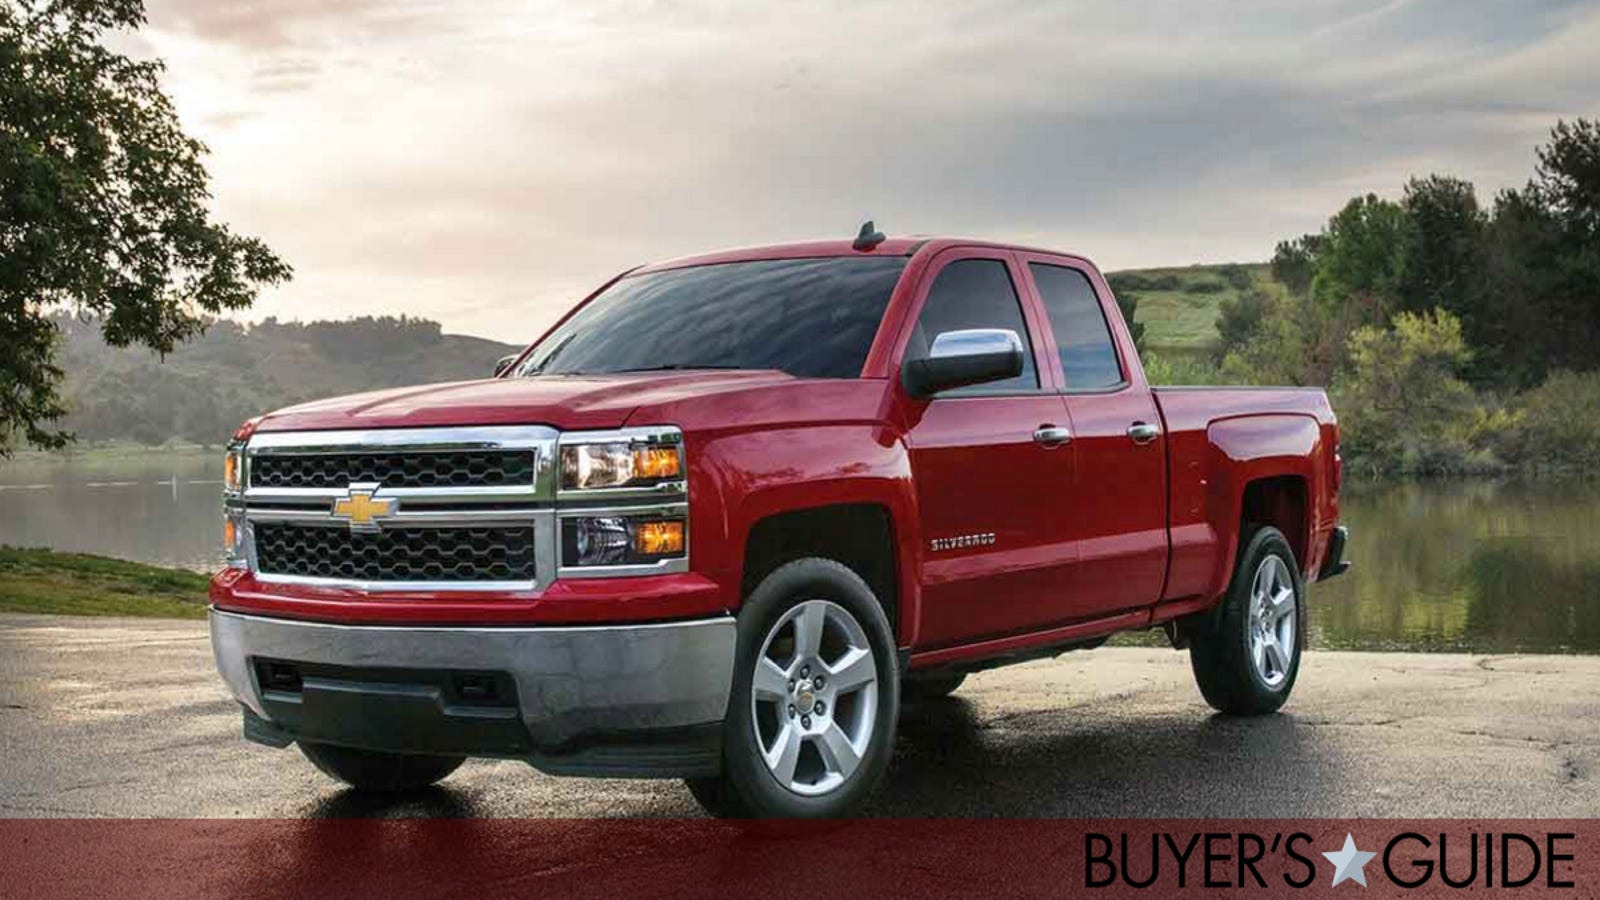 Chevrolet Silverado 1500 The Ultimate Buyers Guide 2015 Chevy Fog Lights